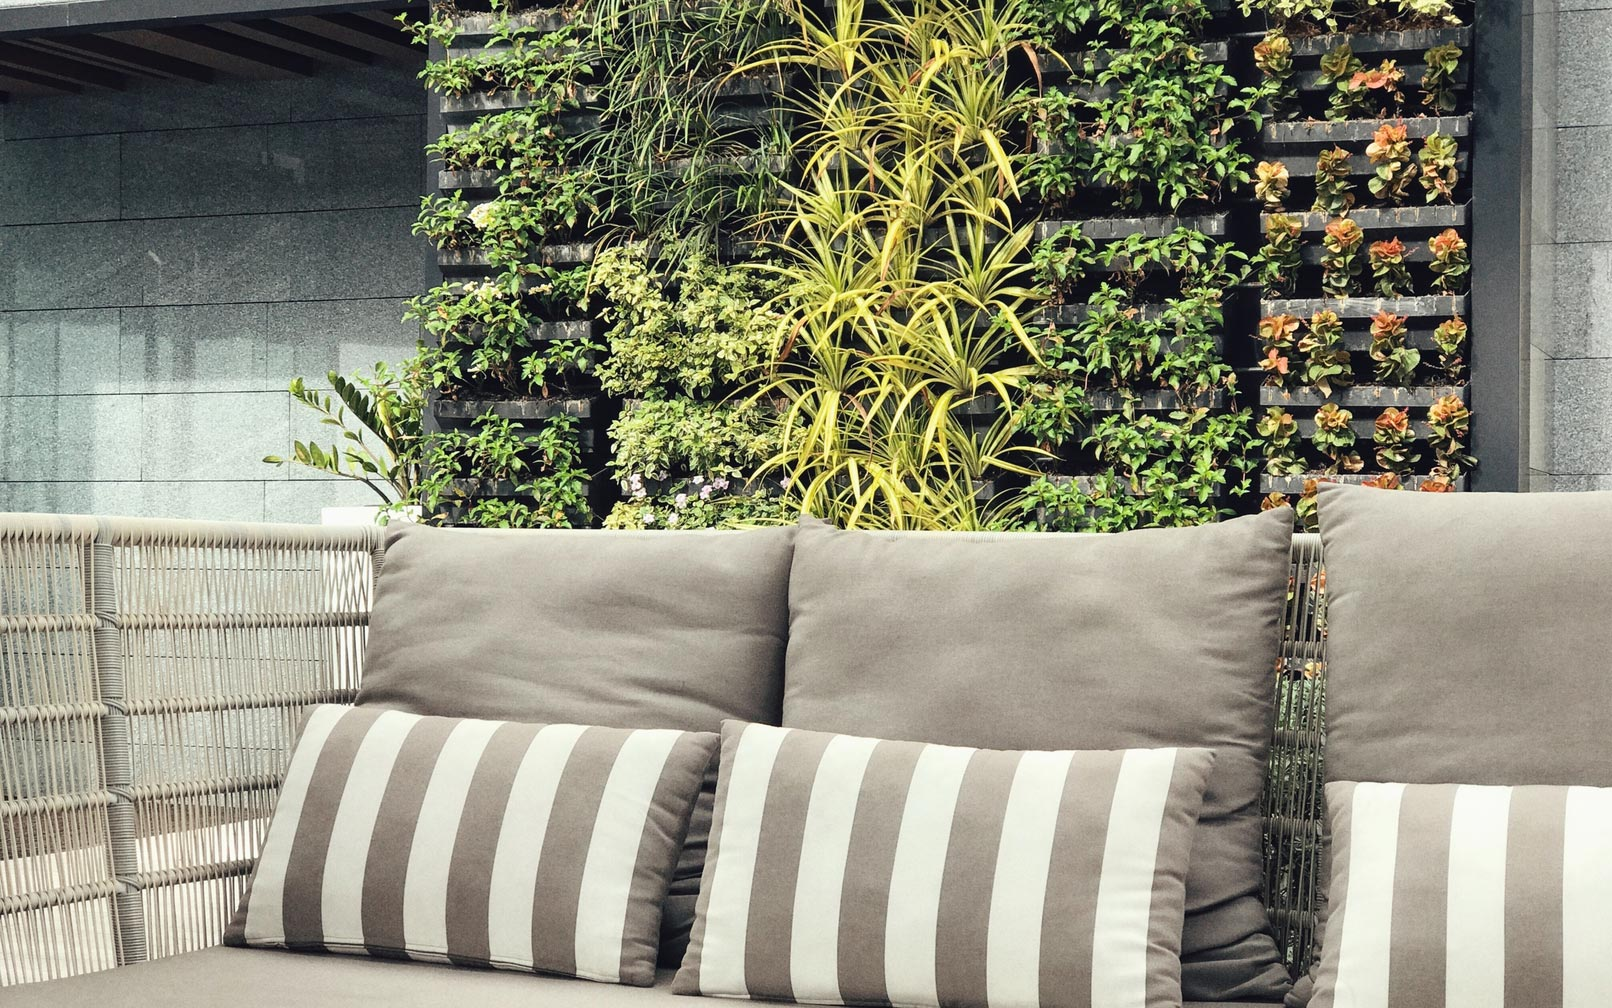 Wall Planters: 10 Tips For Creating Thriving Vertical Gardens